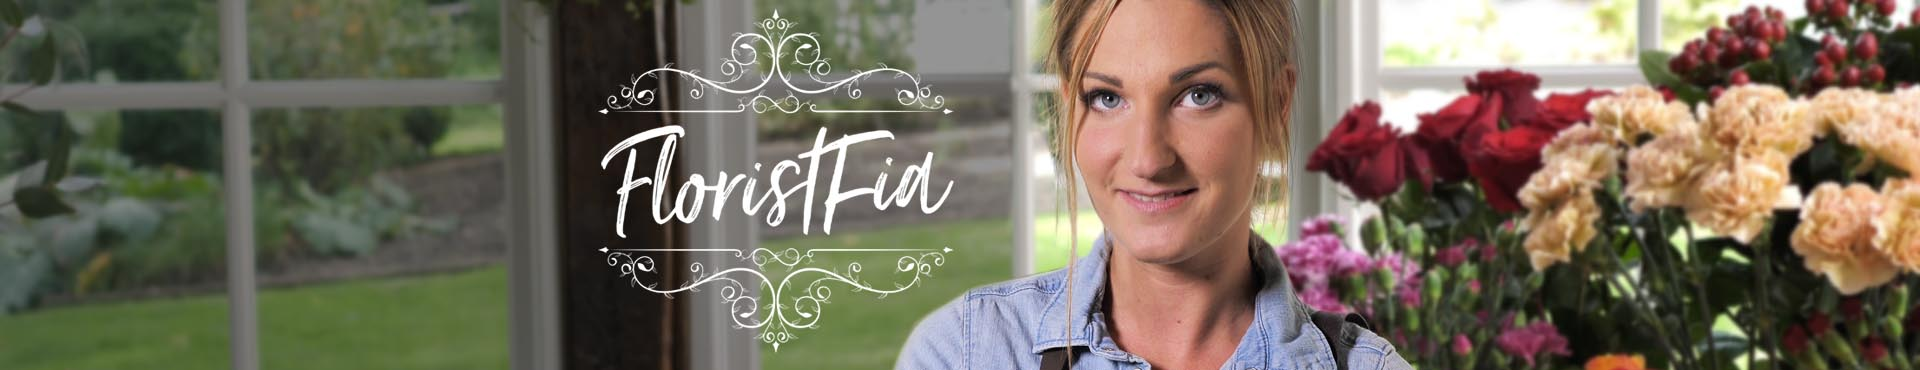 Tips och inspiration med FloristFia